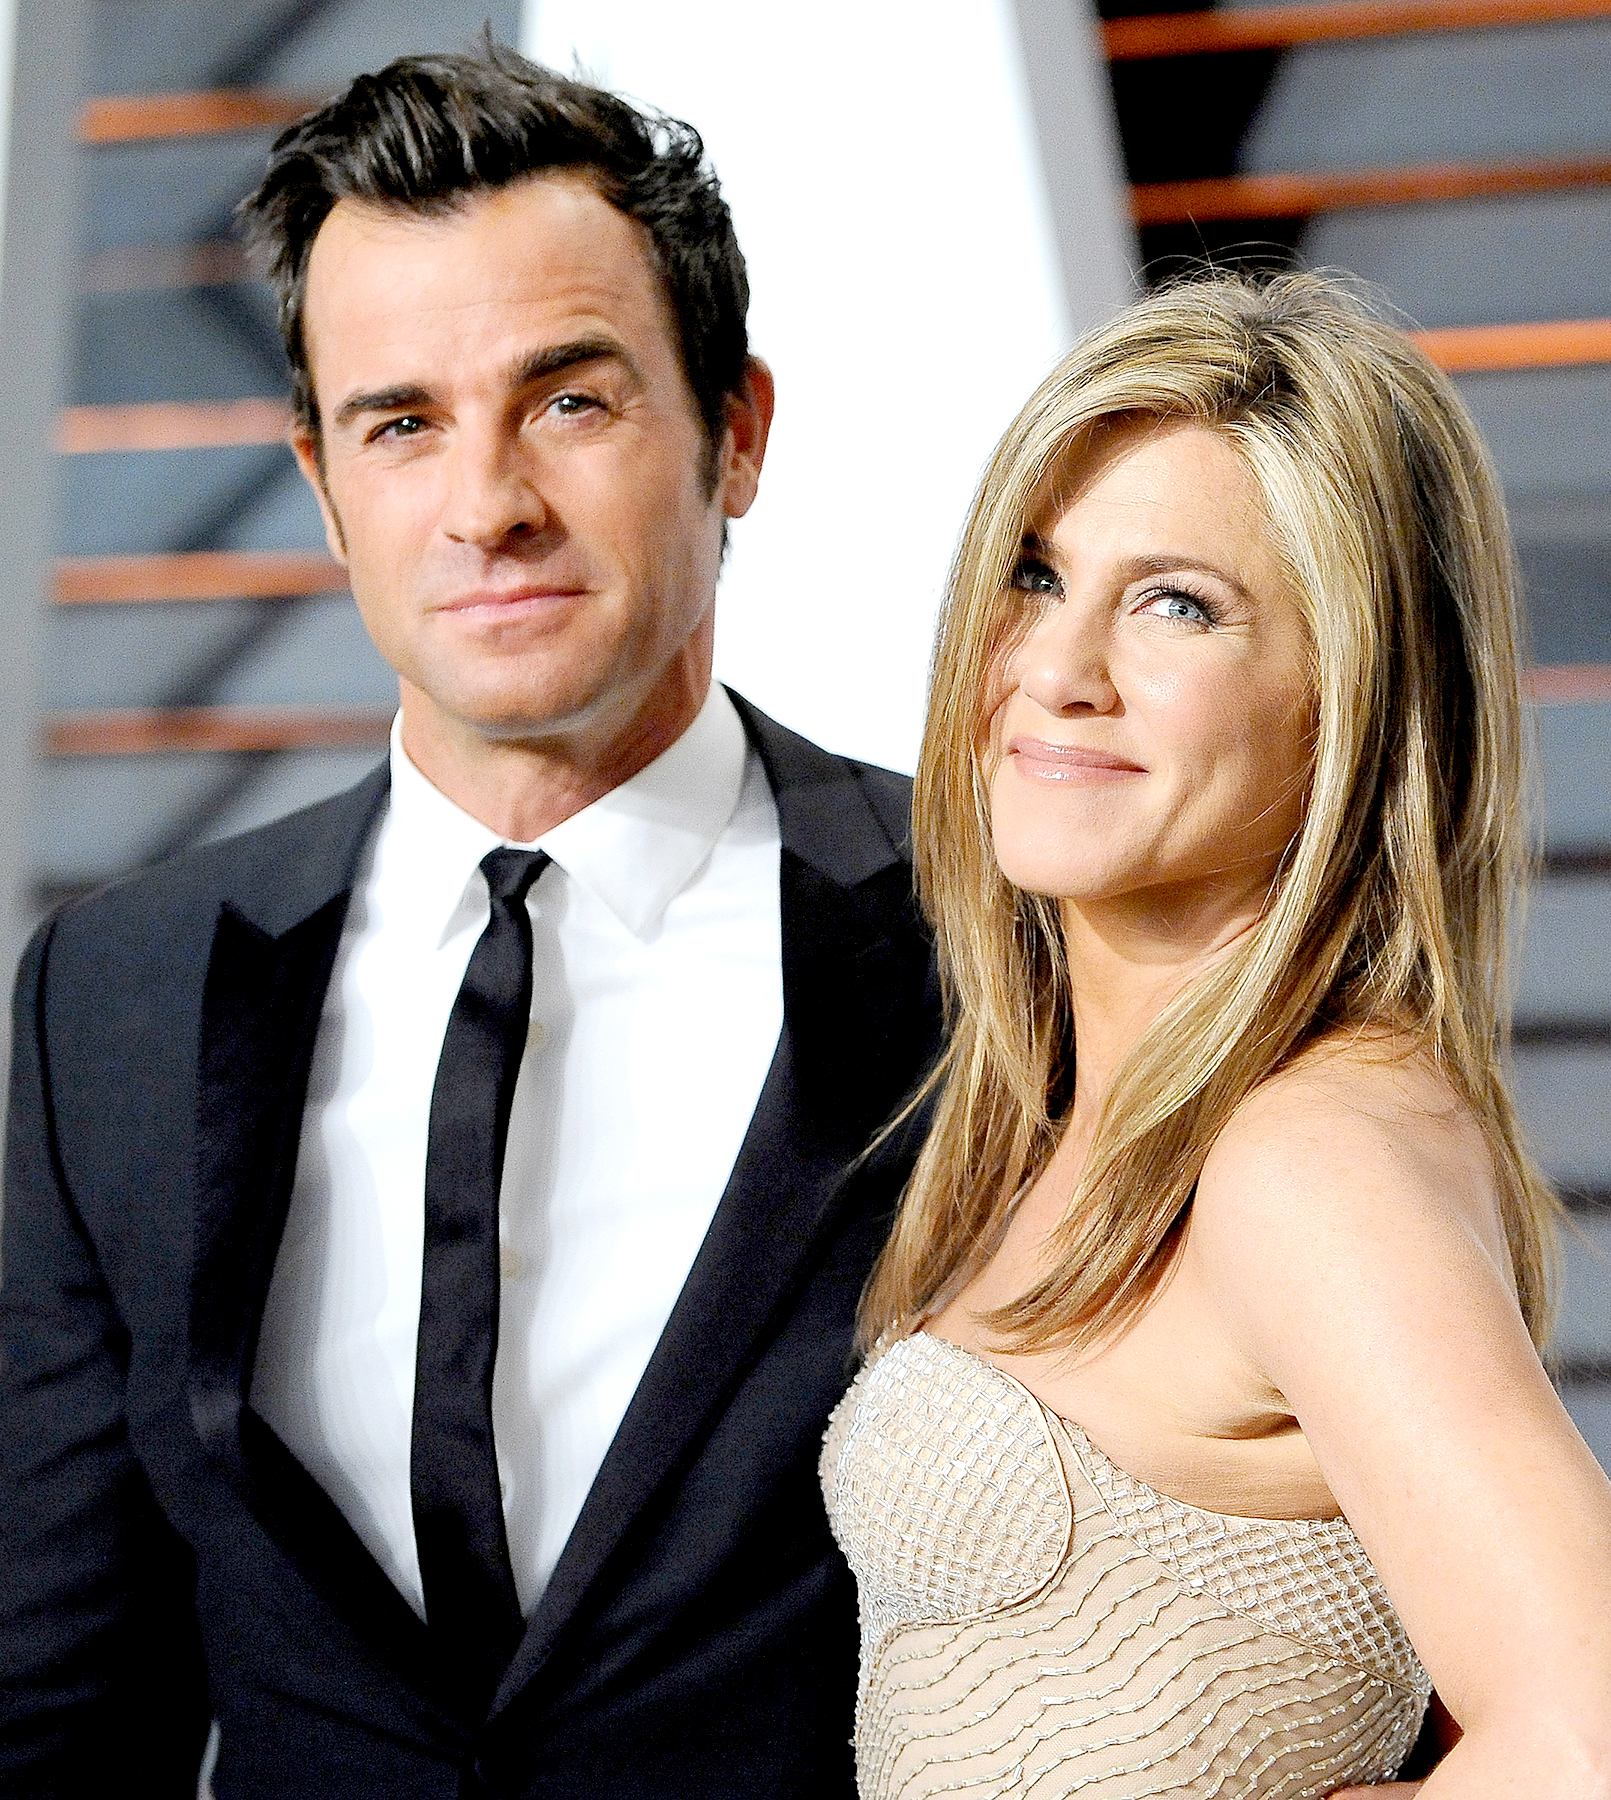 Justin Theroux and Jennifer Aniston arrive at the 2015 Vanity Fair Oscar Party Hosted By Graydon Carter at Wallis Annenberg Center for the Performing Arts on February 22, 2015 in Beverly Hills, California.